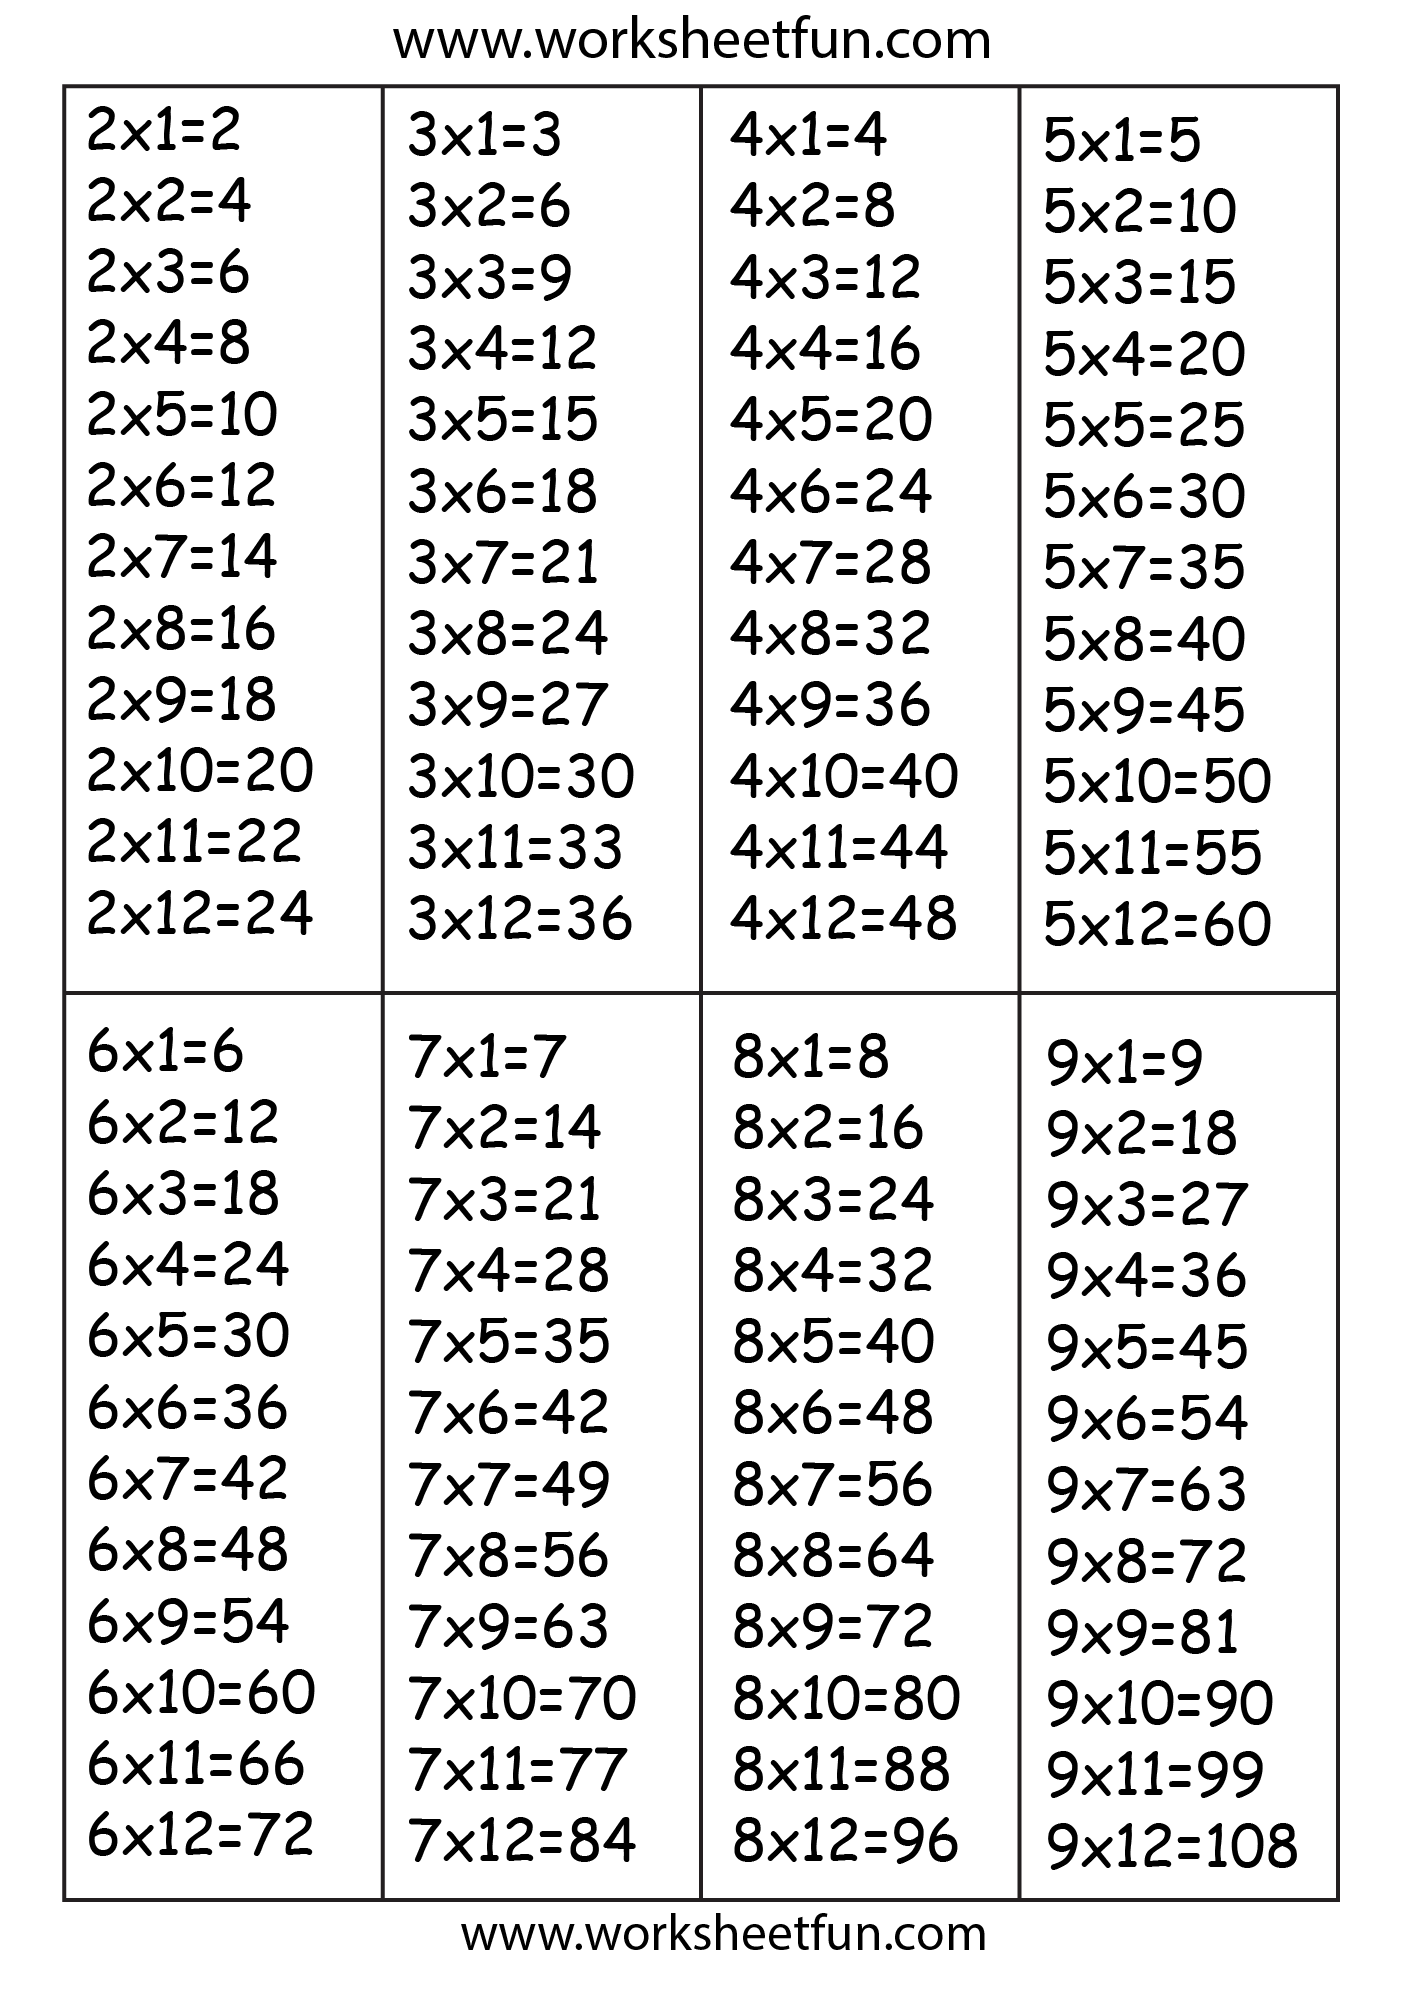 Printables Multiplication Tables Worksheet times tables free printable worksheets worksheetfun table chart 2 3 4 5 6 7